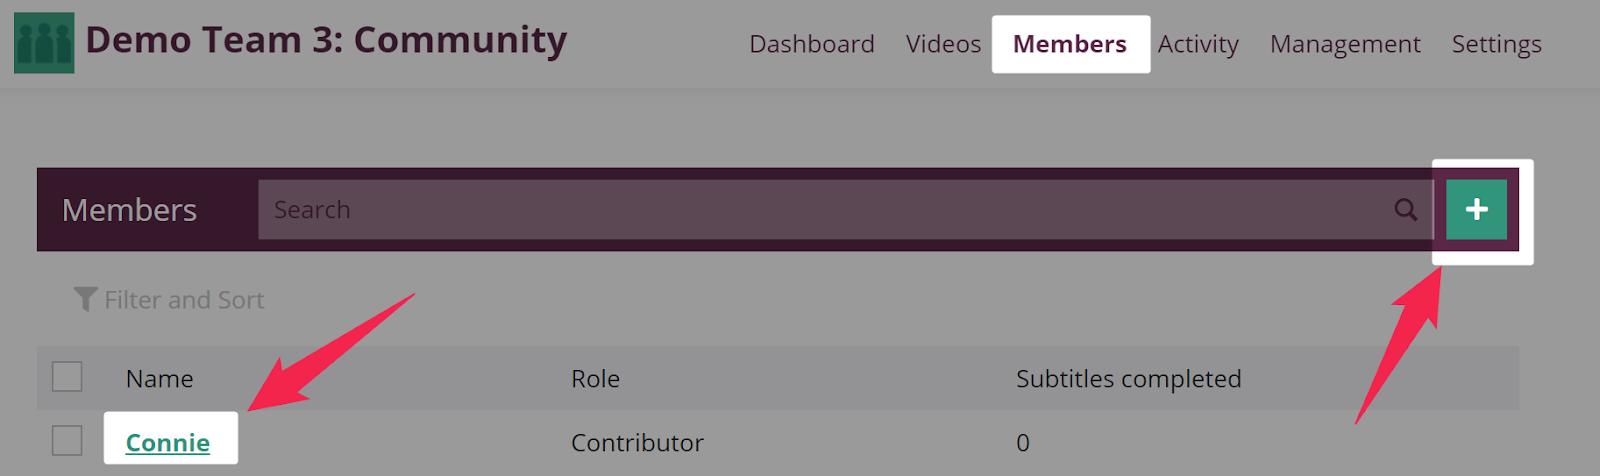 Team member page on Amara teams with button to add members and member profile links highlighted